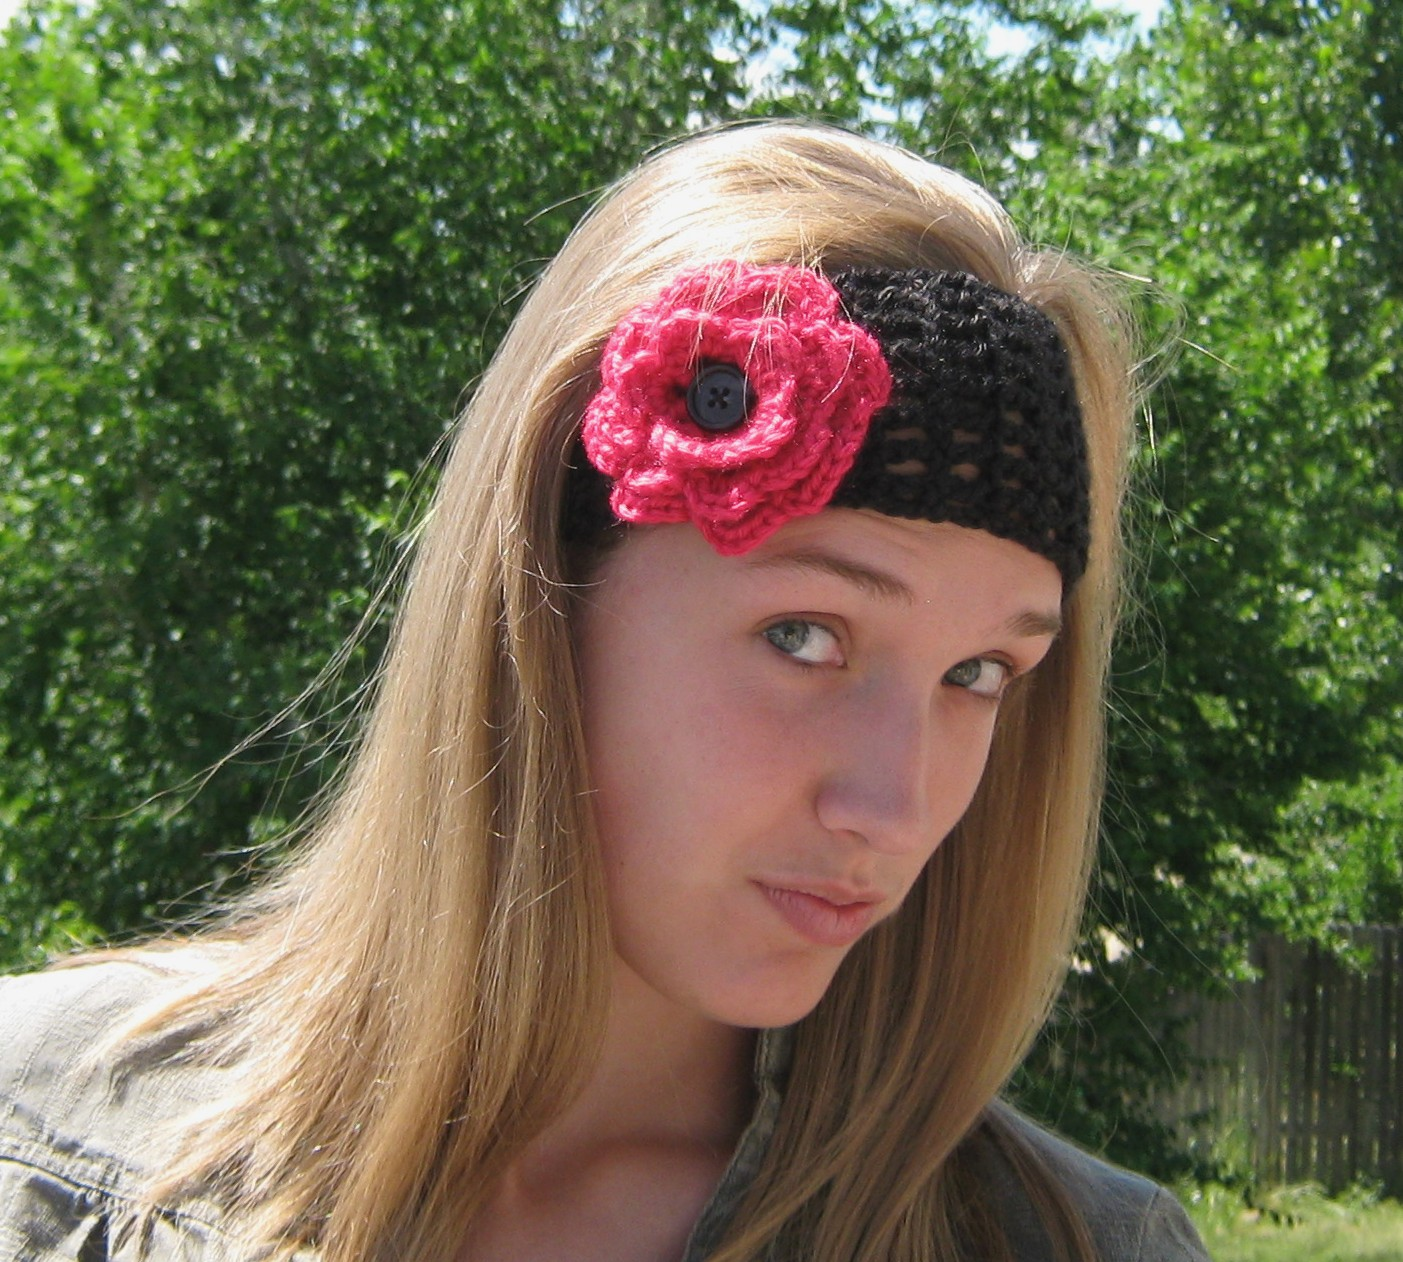 5 daughters: How to crochet a hairband or headband